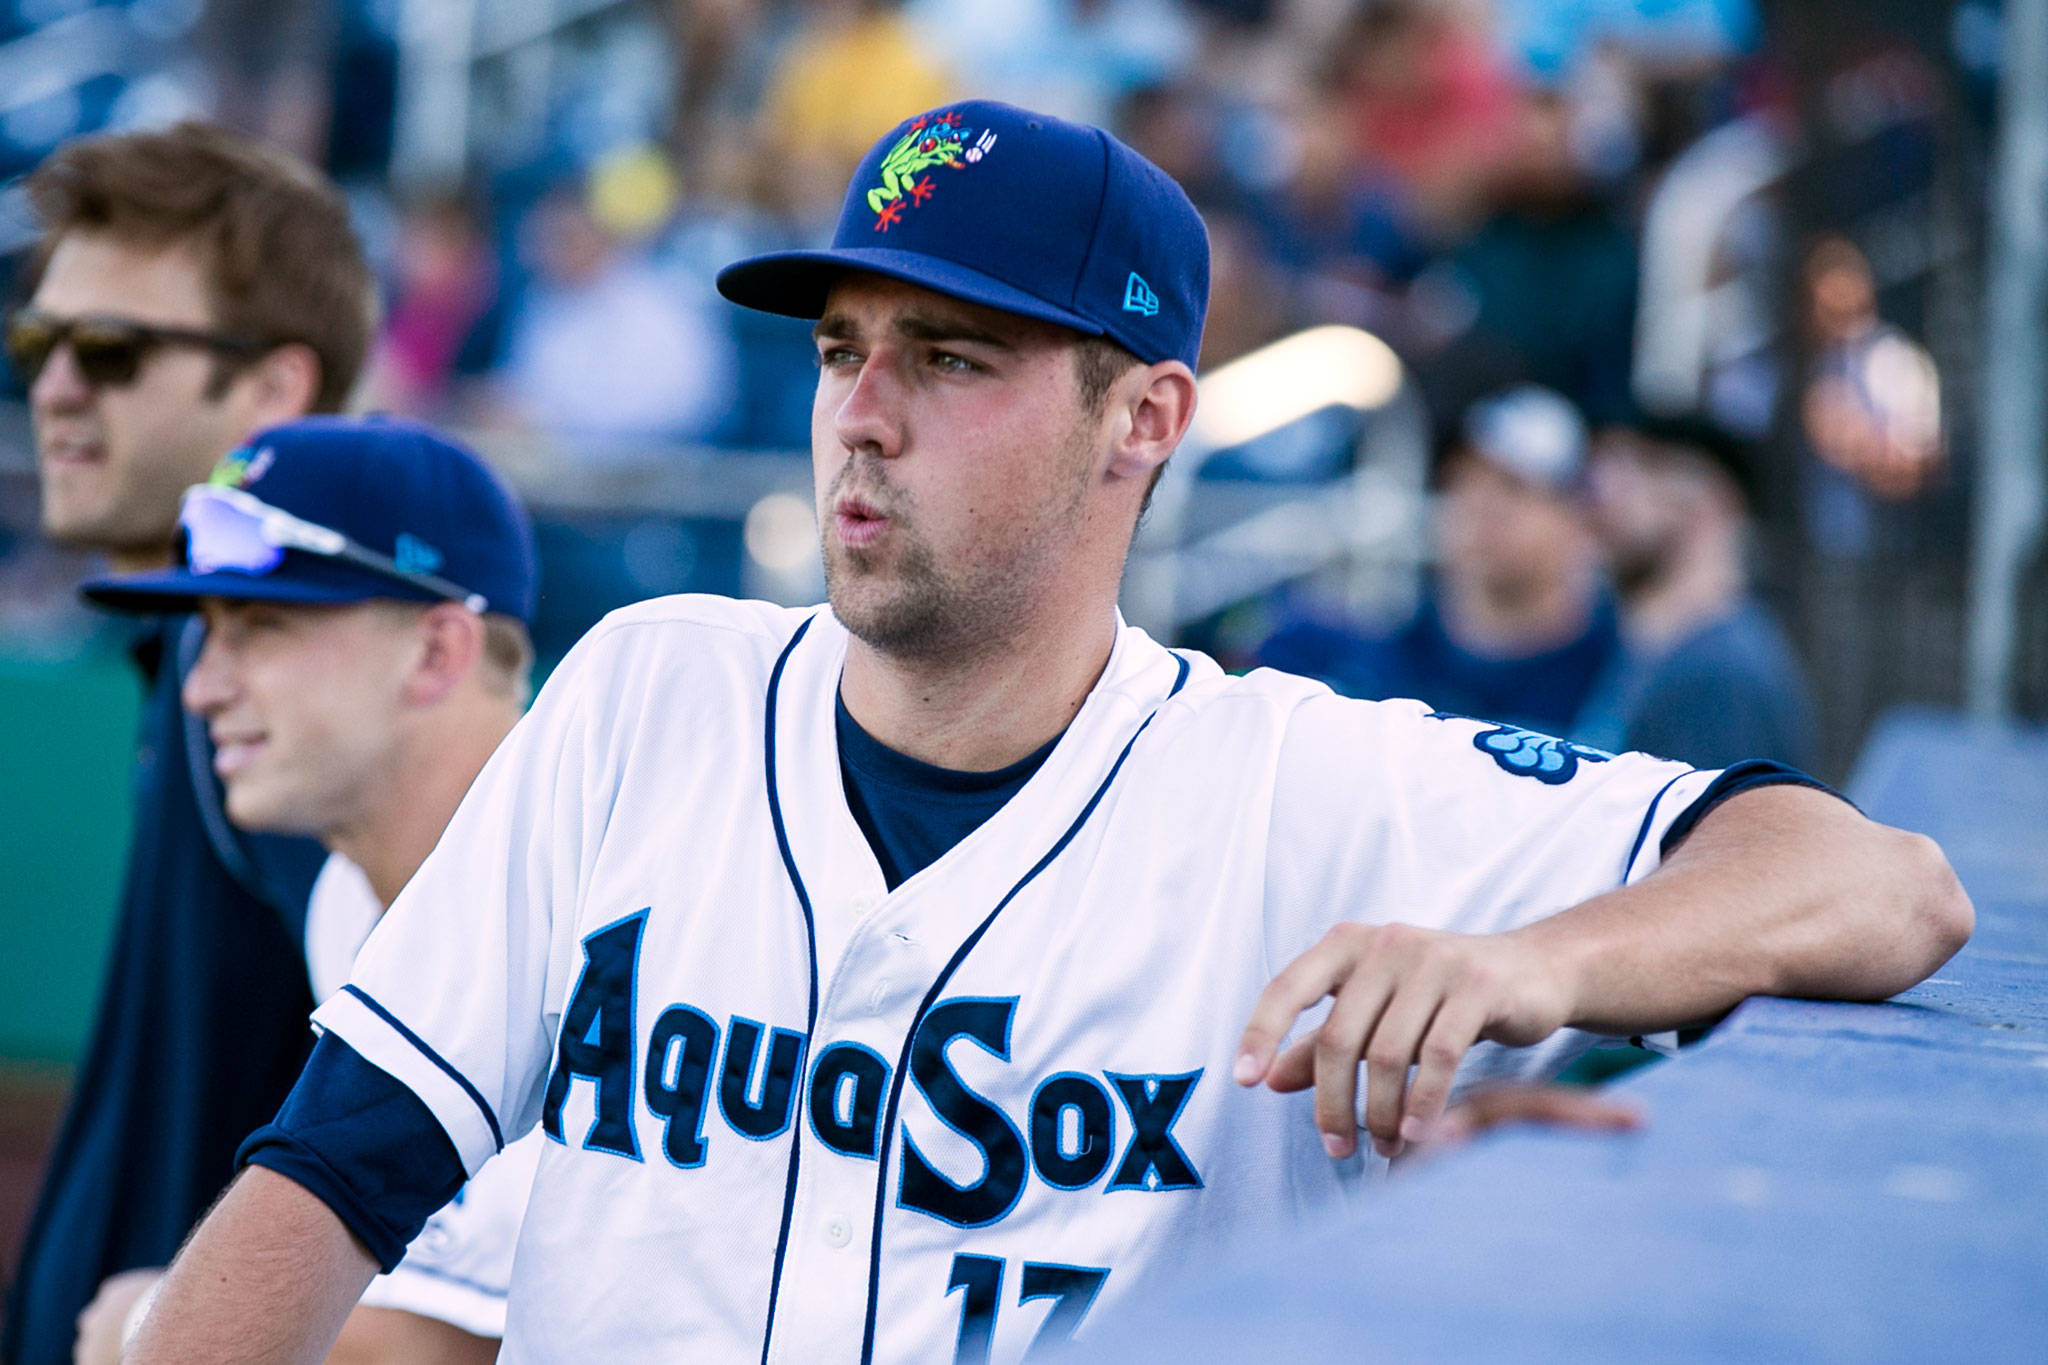 Aquasox's Michael Plassmeyer watches the action on the field against the Spokane Indians Tuesday evening at Everett Memorial Stadium on July 17, 2018. (Kevin Clark / The Herald)